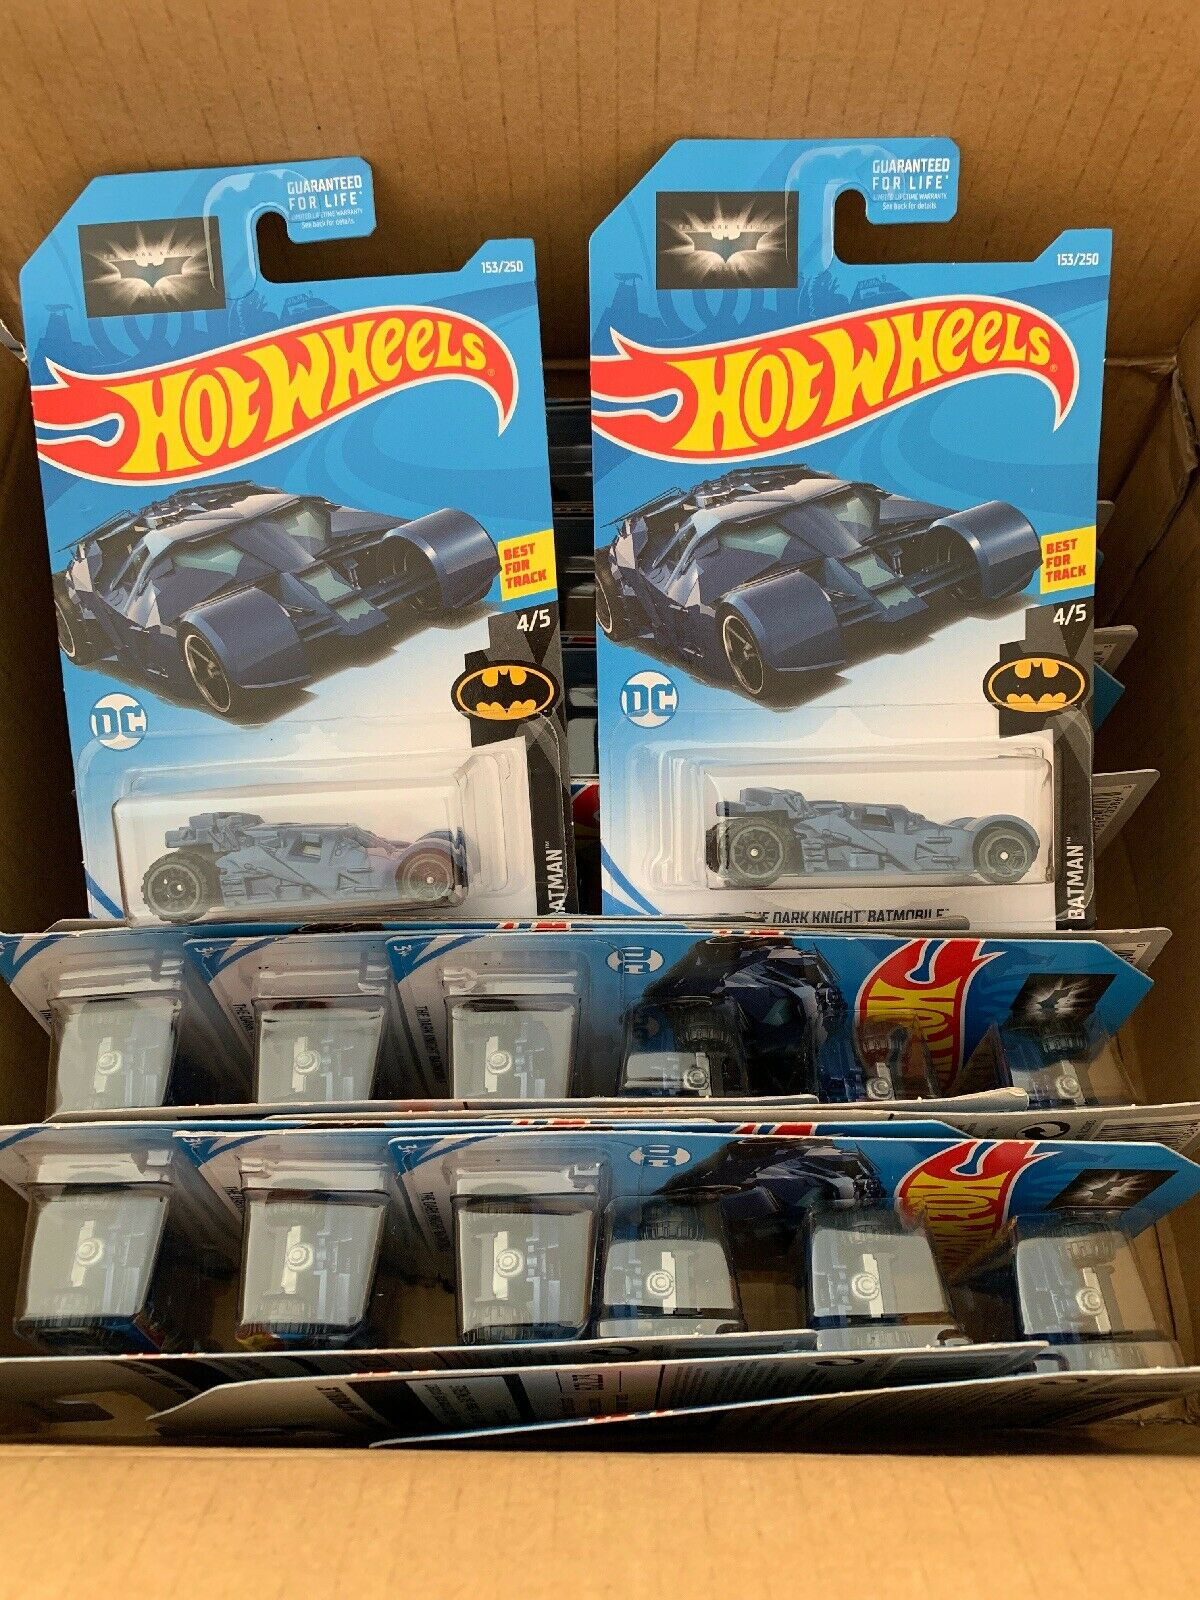 2019 HOT WHEELS Dark Knight Batmobile Lot de 36